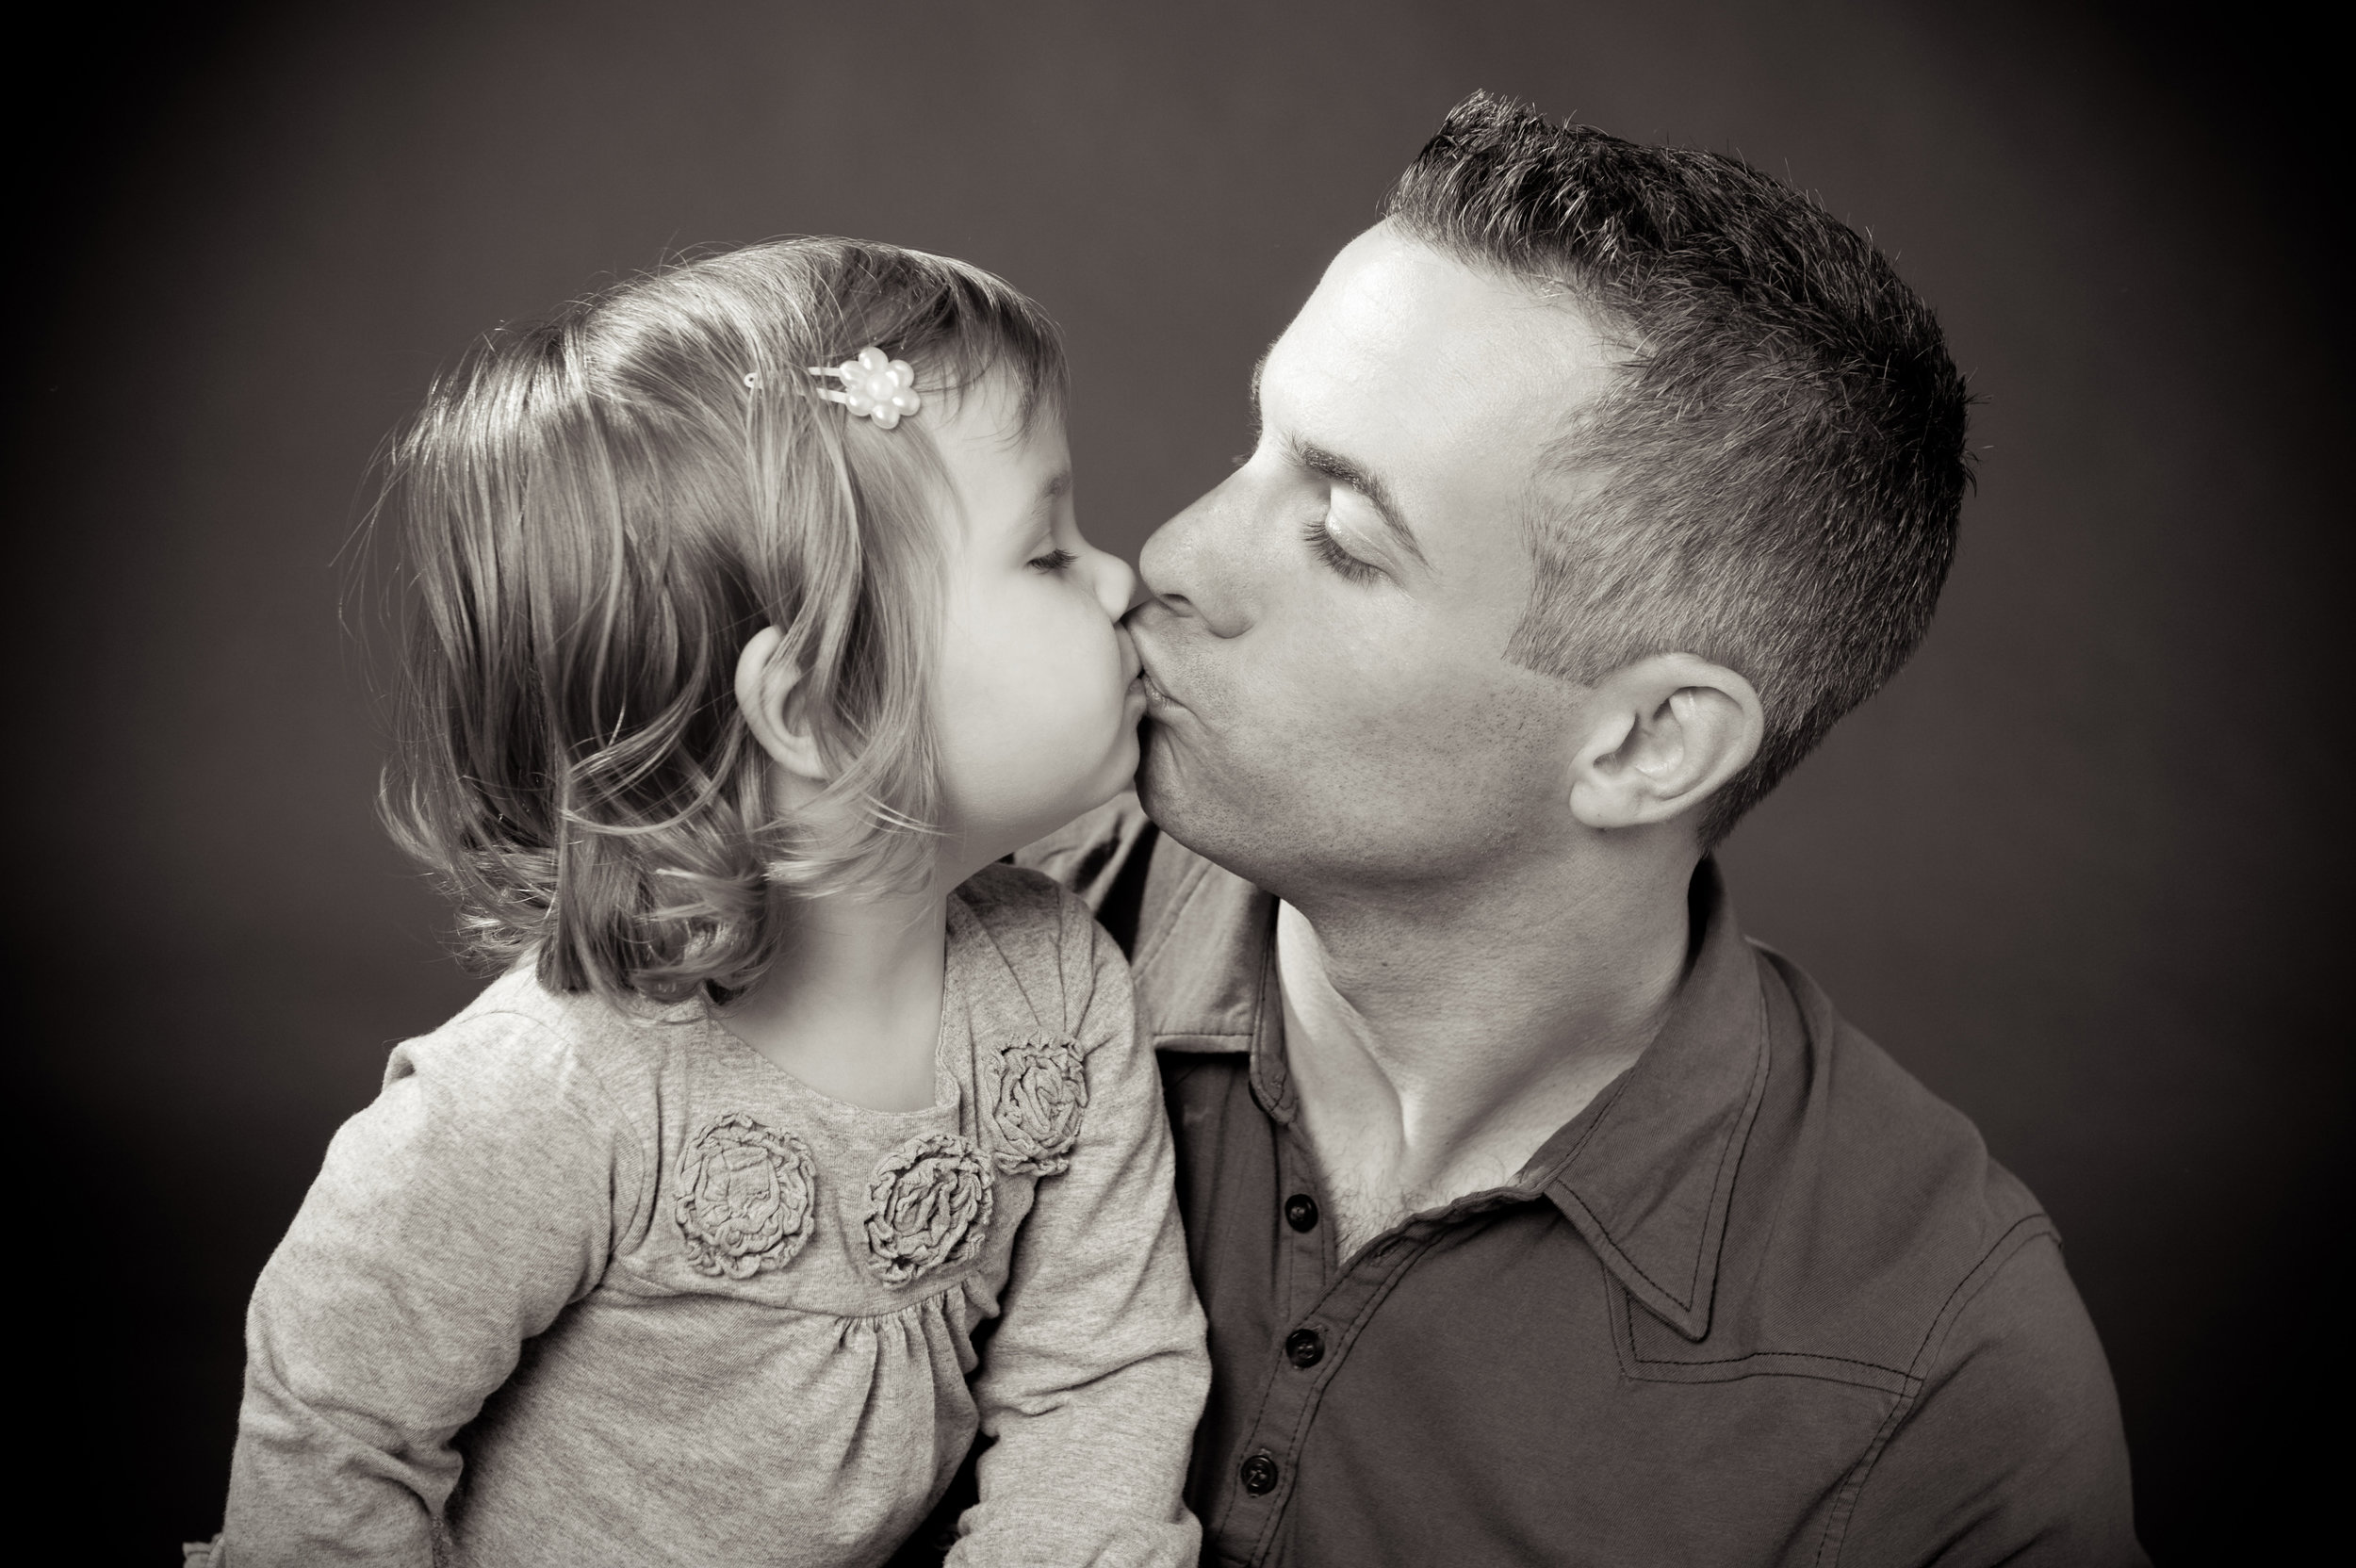 marta hewson - father kissing daughter.jpg